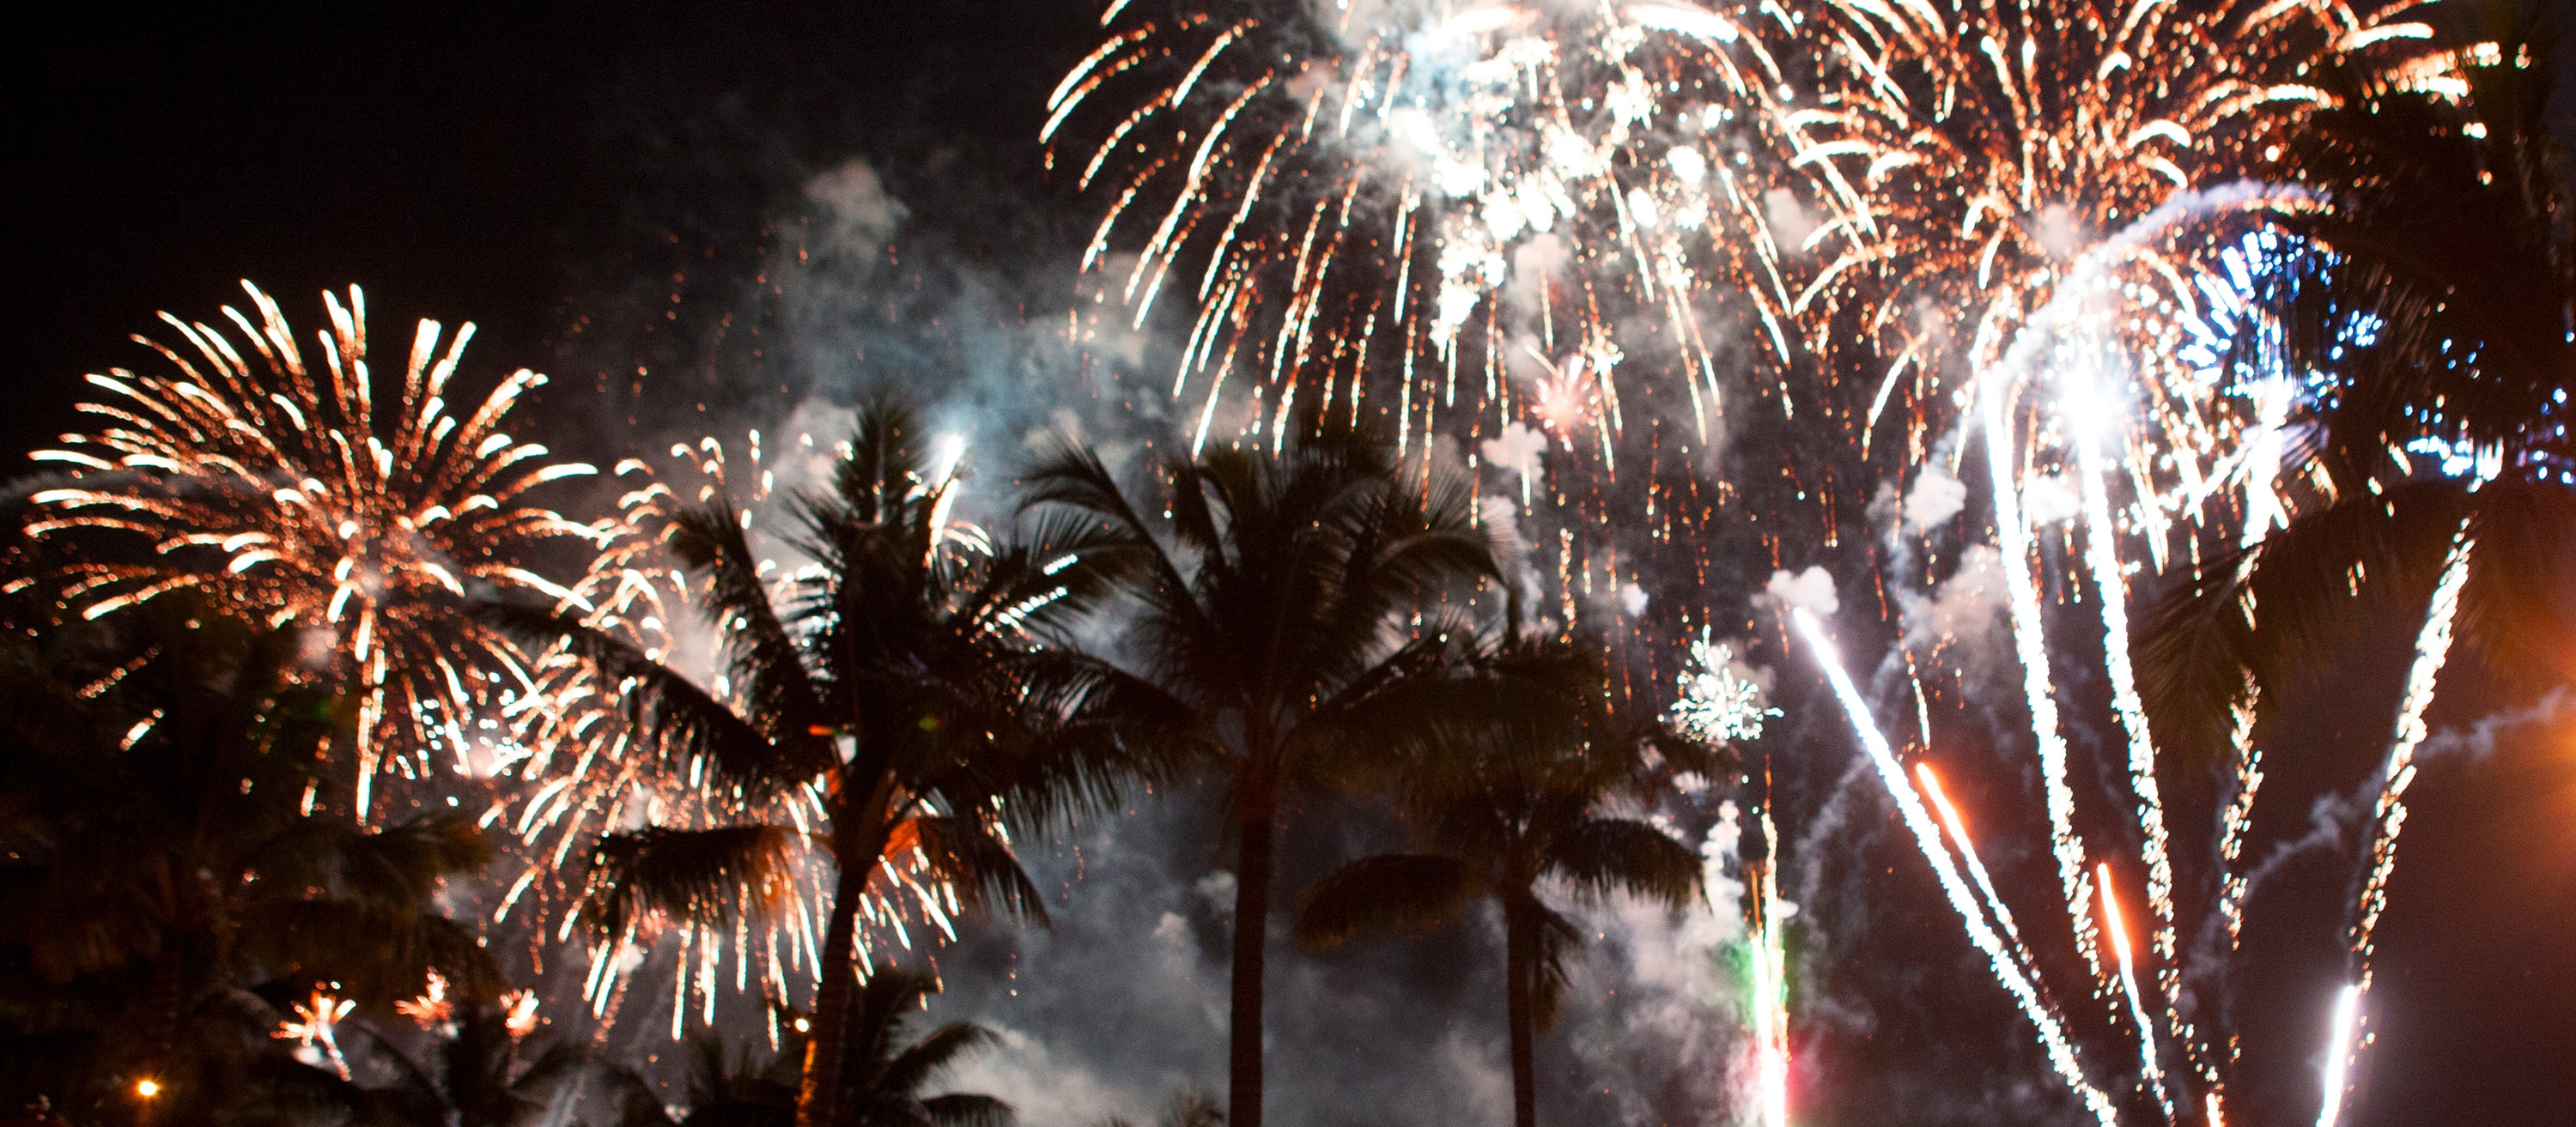 Several bursts of fireworks fill the night sky above a line of palm trees